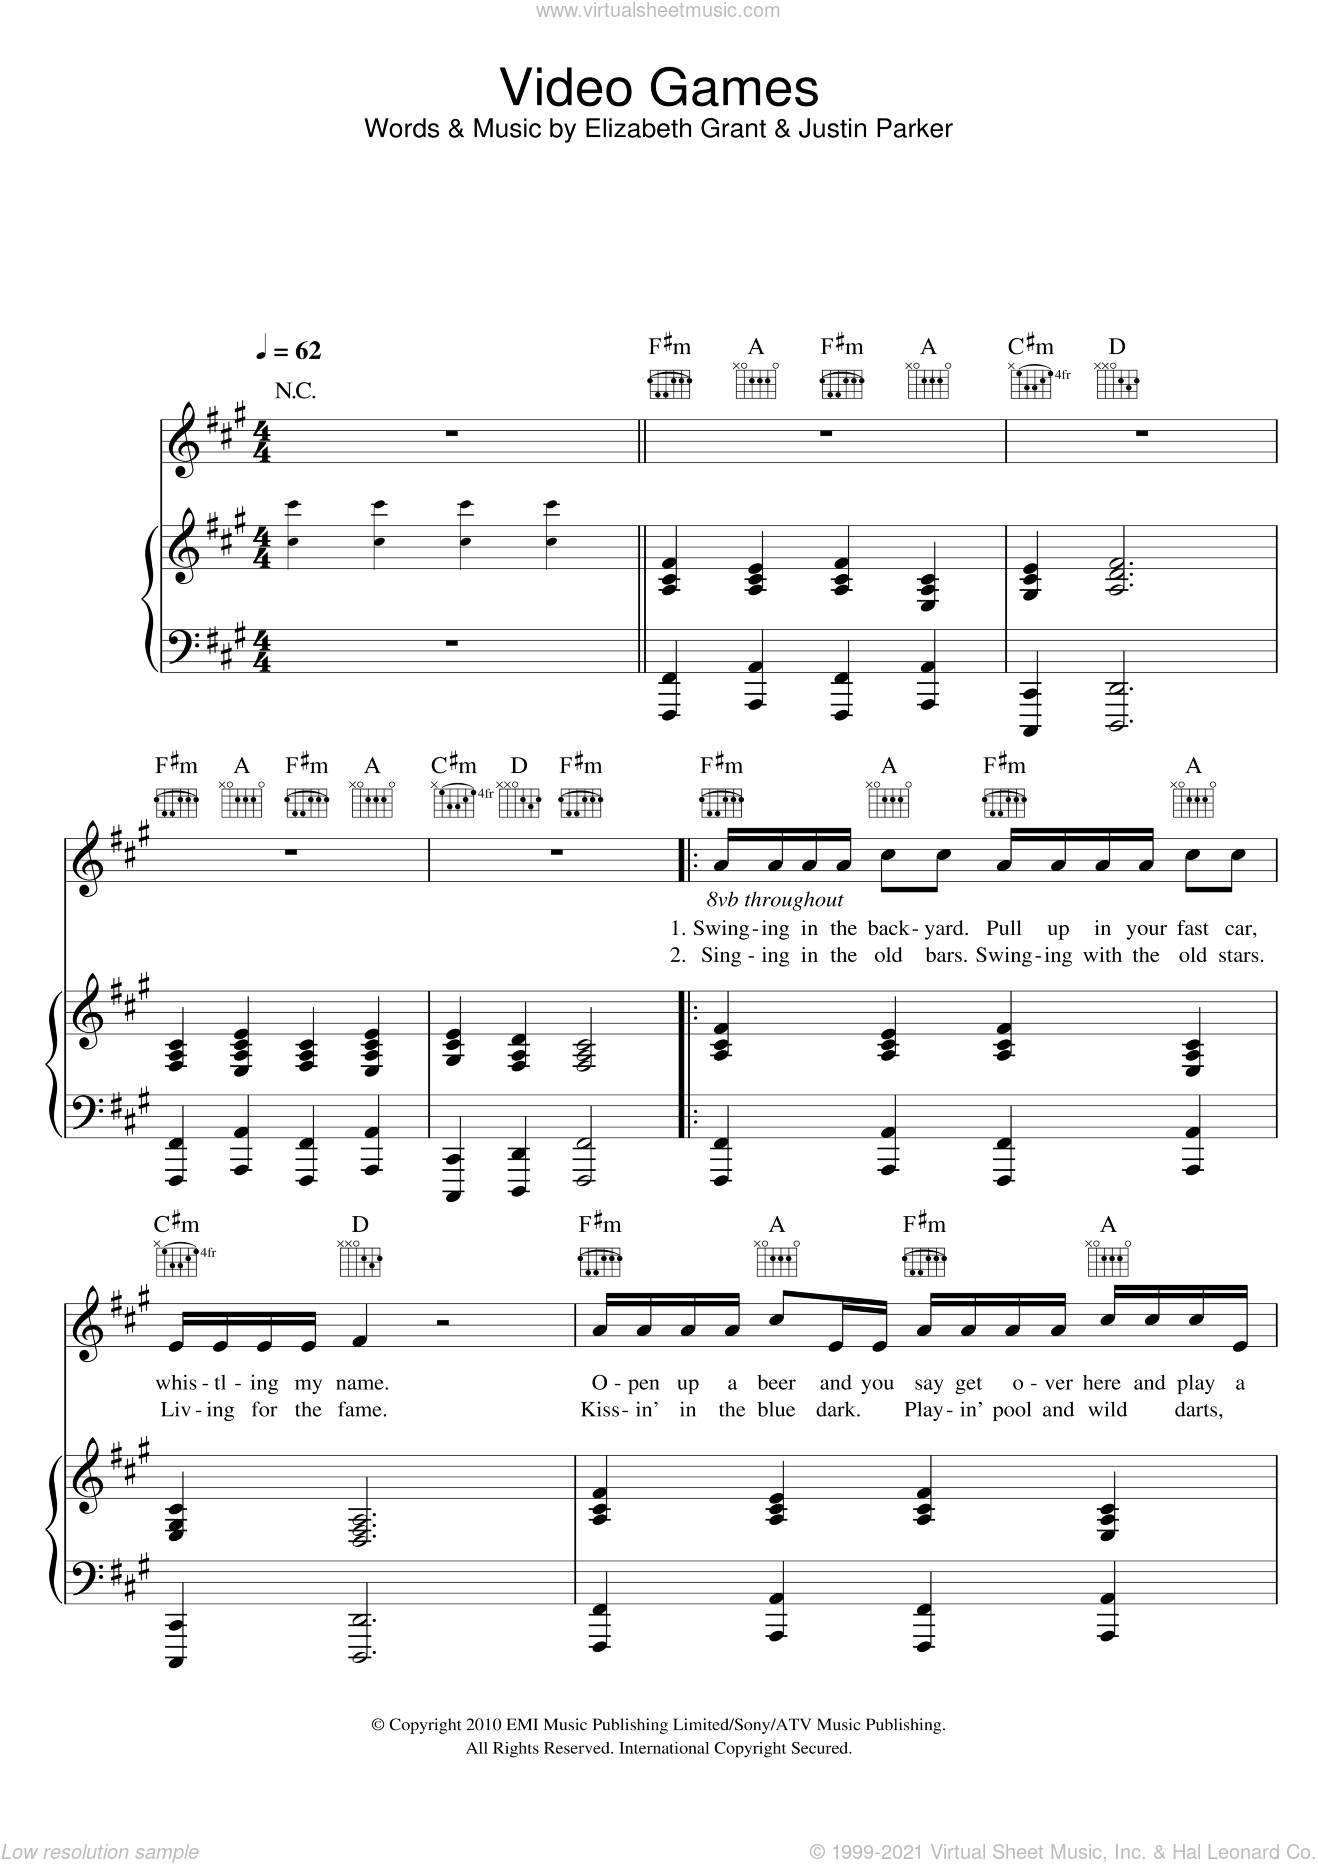 Video Games sheet music for voice, piano or guitar by Justin Parker